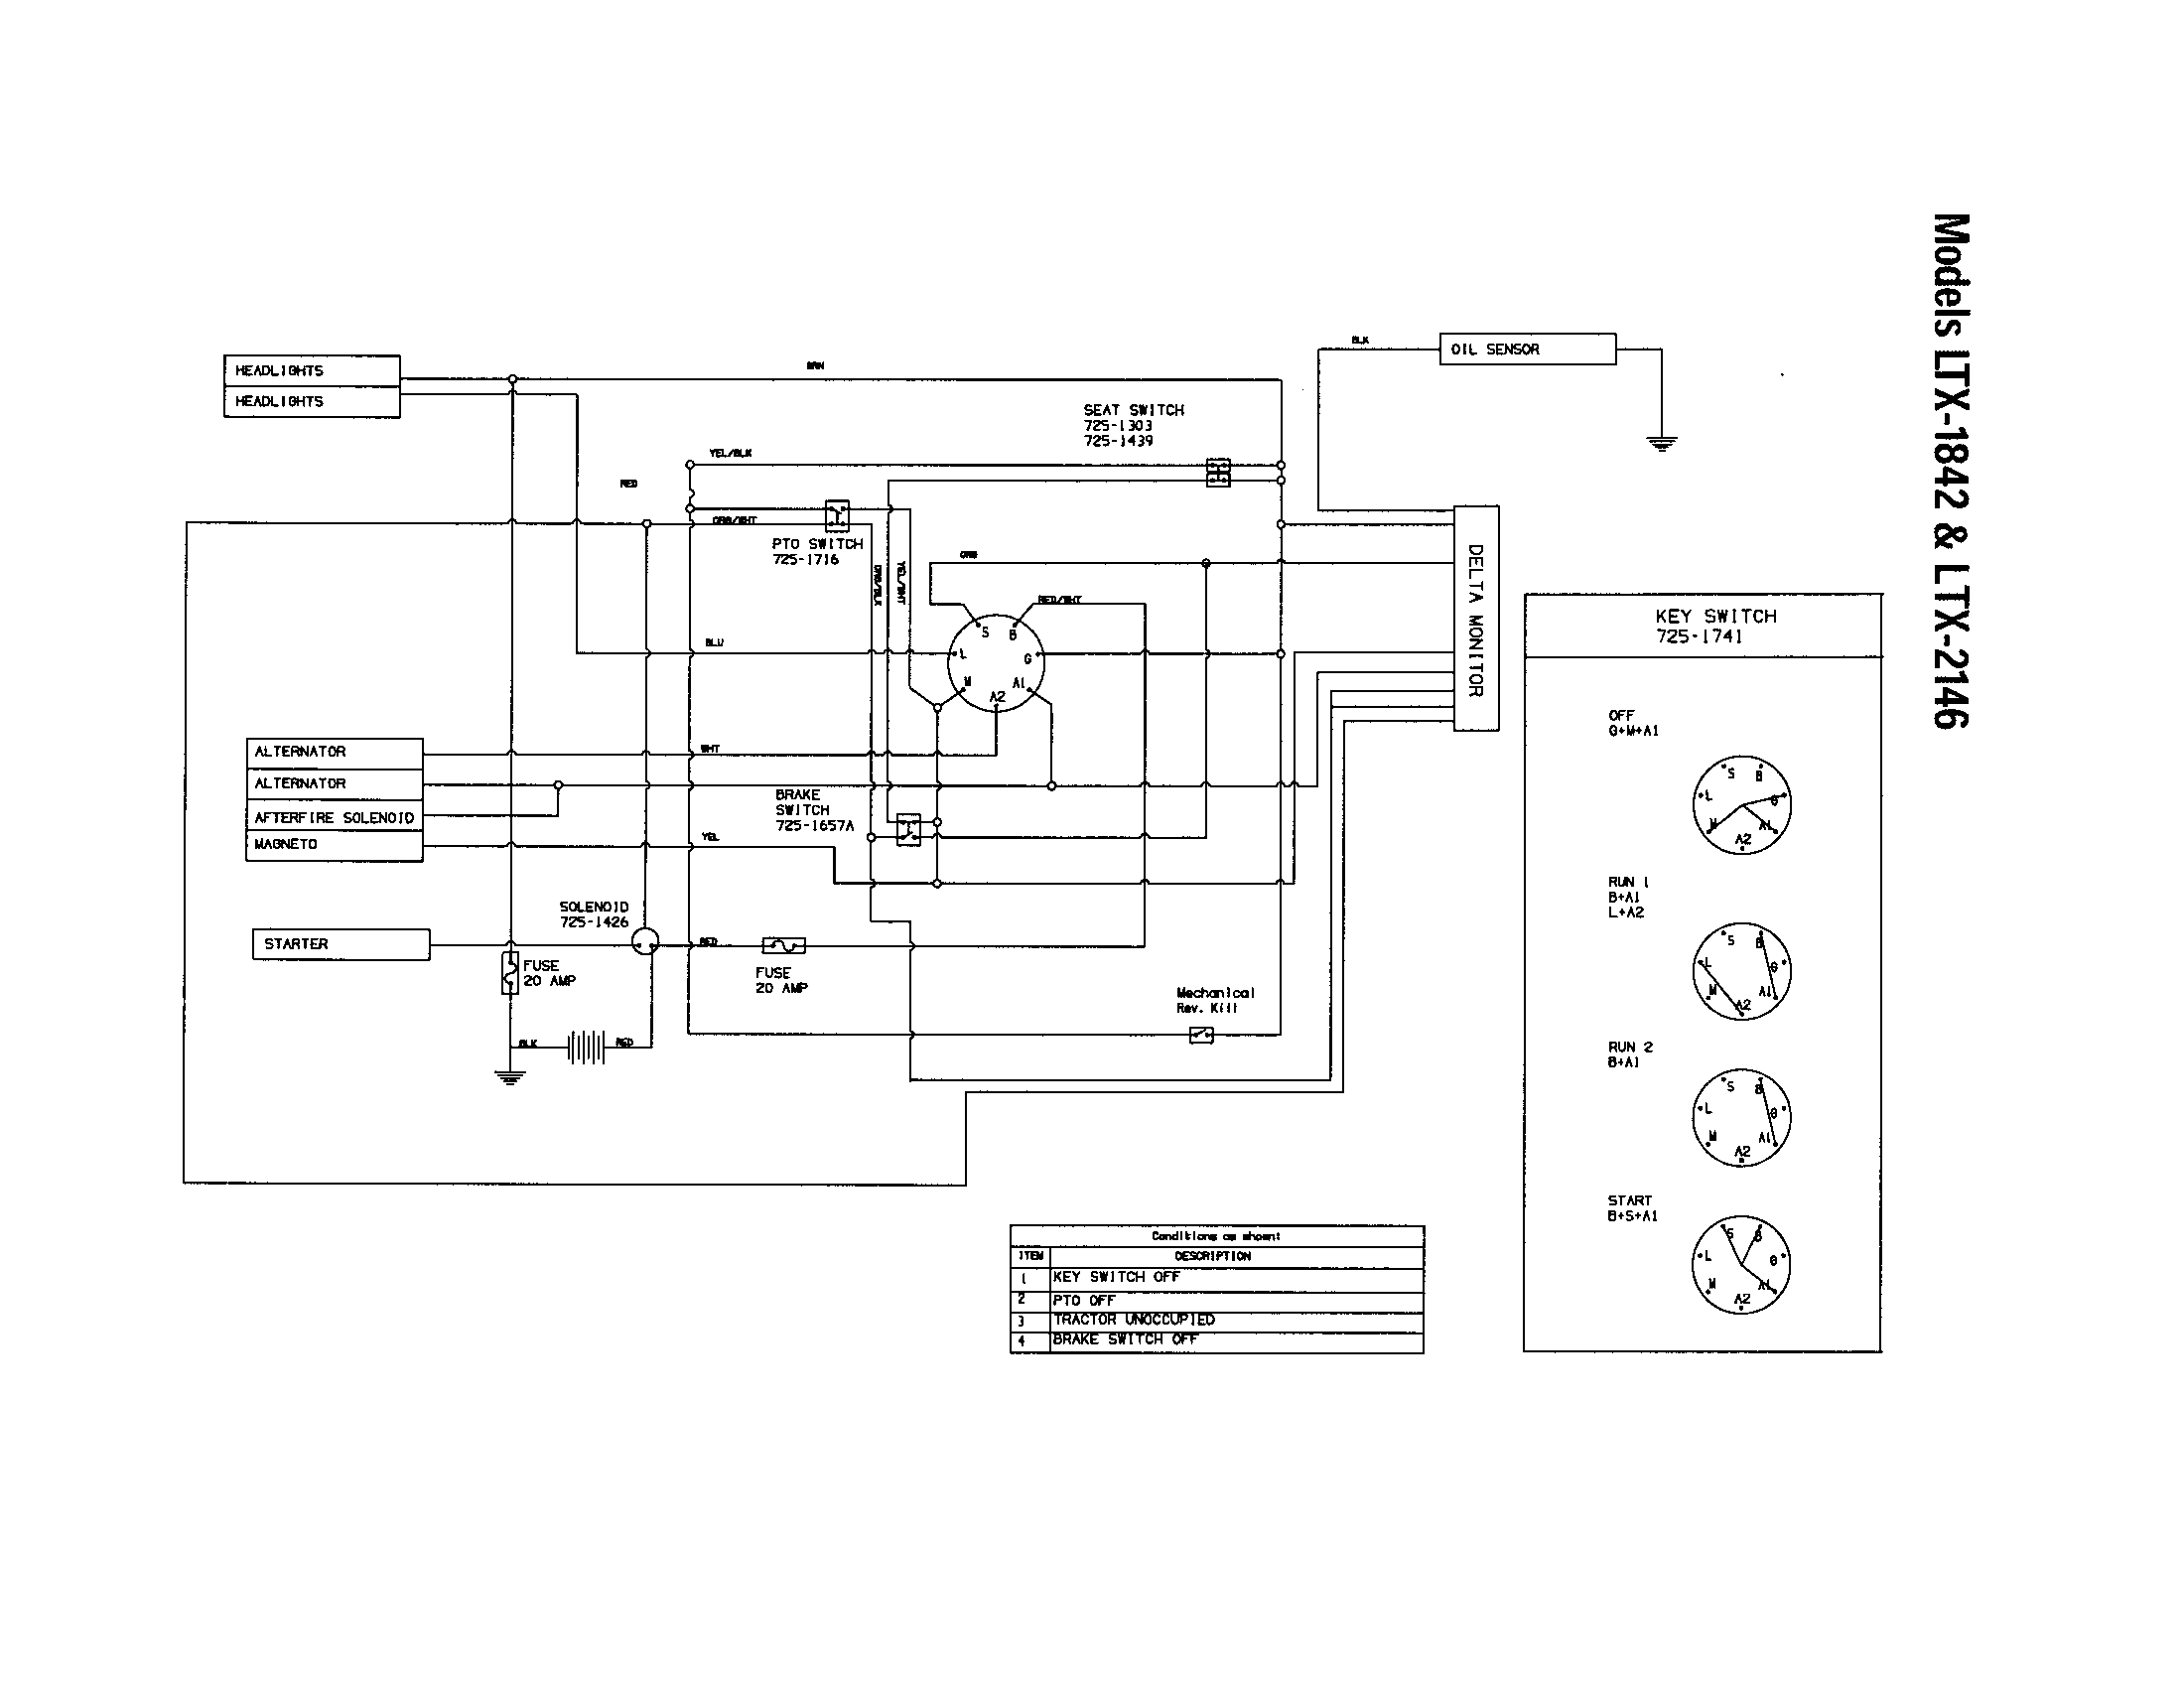 wiring diagram diagram parts list for model apg troybilt wiring diagram diagram parts list for model 13ap609g063 troybilt parts riding mower